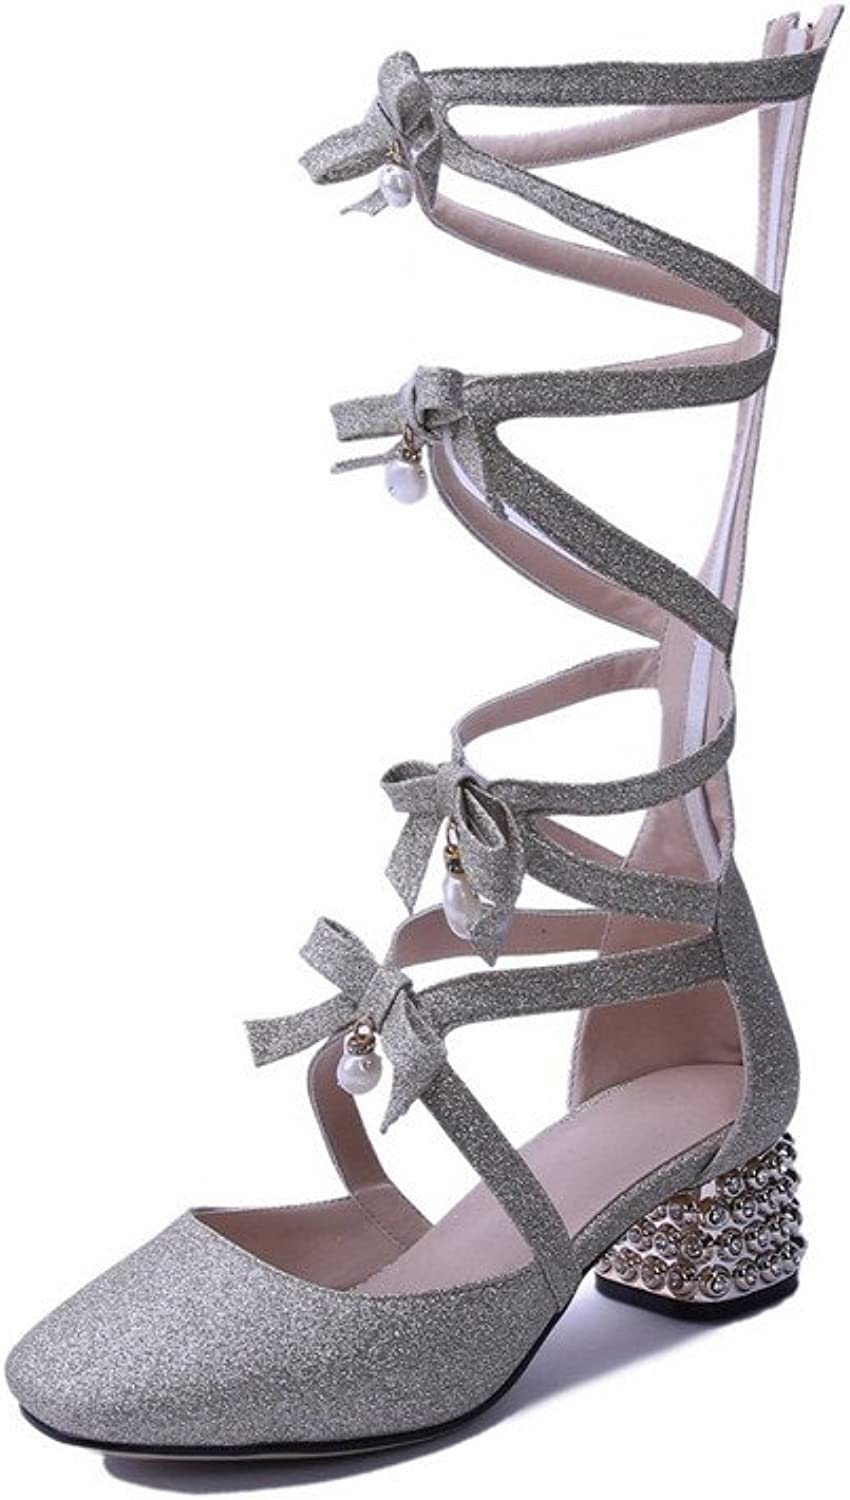 AllhqFashion Women's Patent Leather Zipper Square Closed Toe Kitten-Heels Solid Sandals